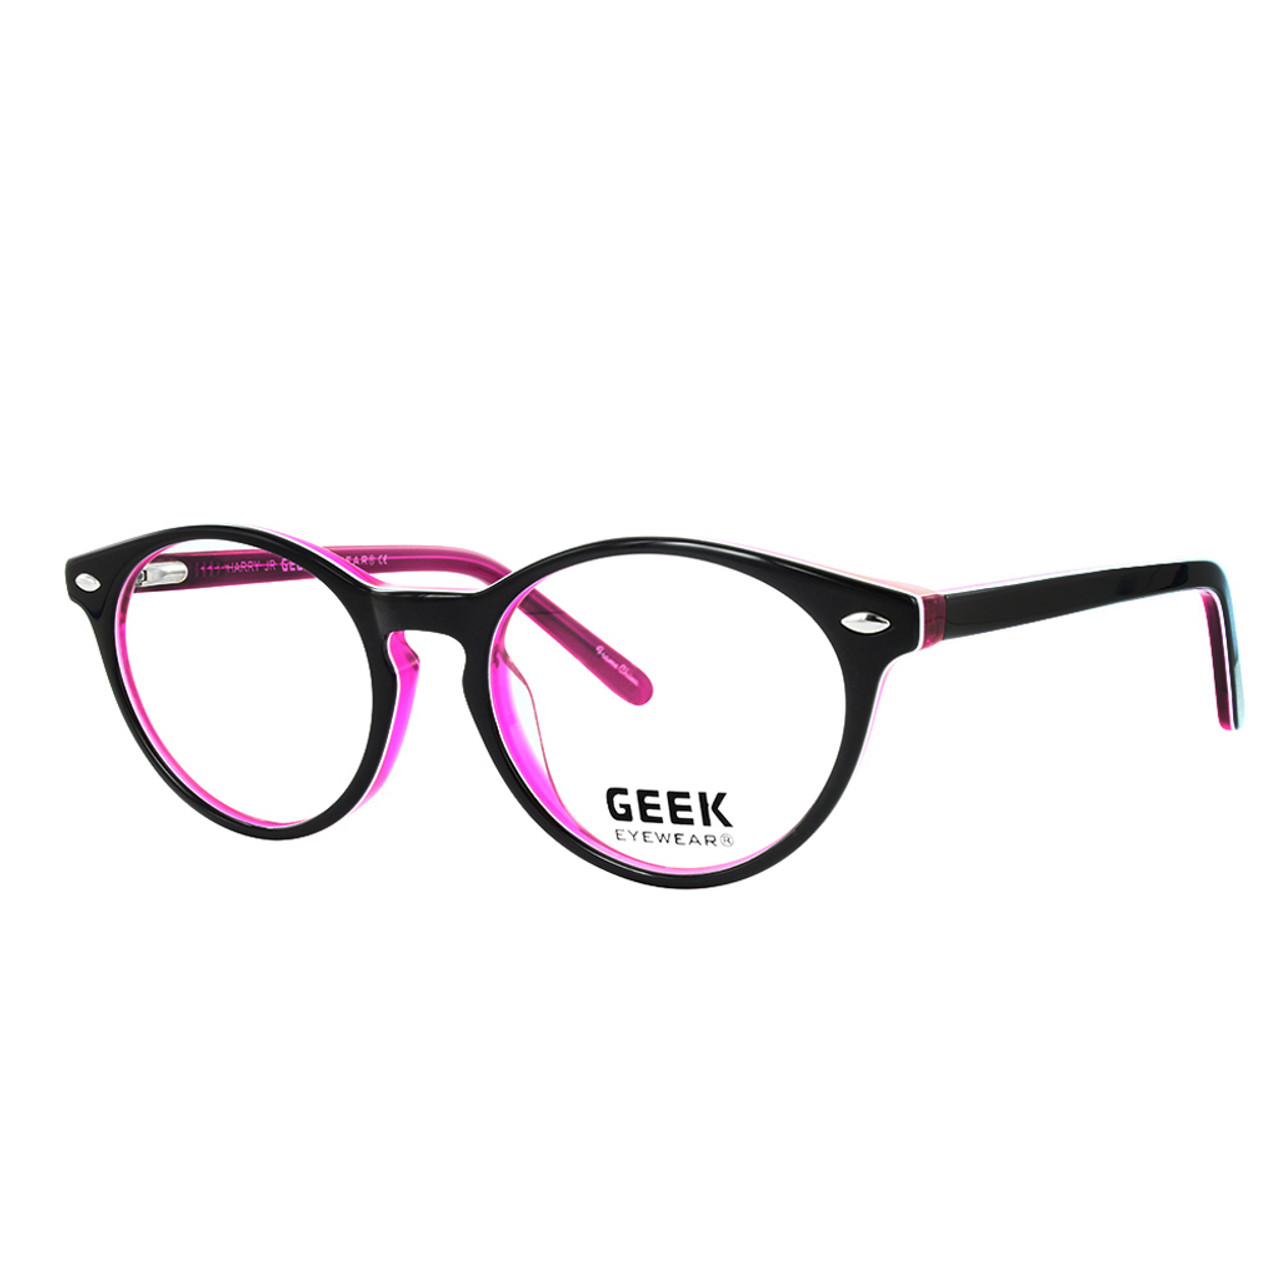 GEEK Eyewear Harry Junior Pink